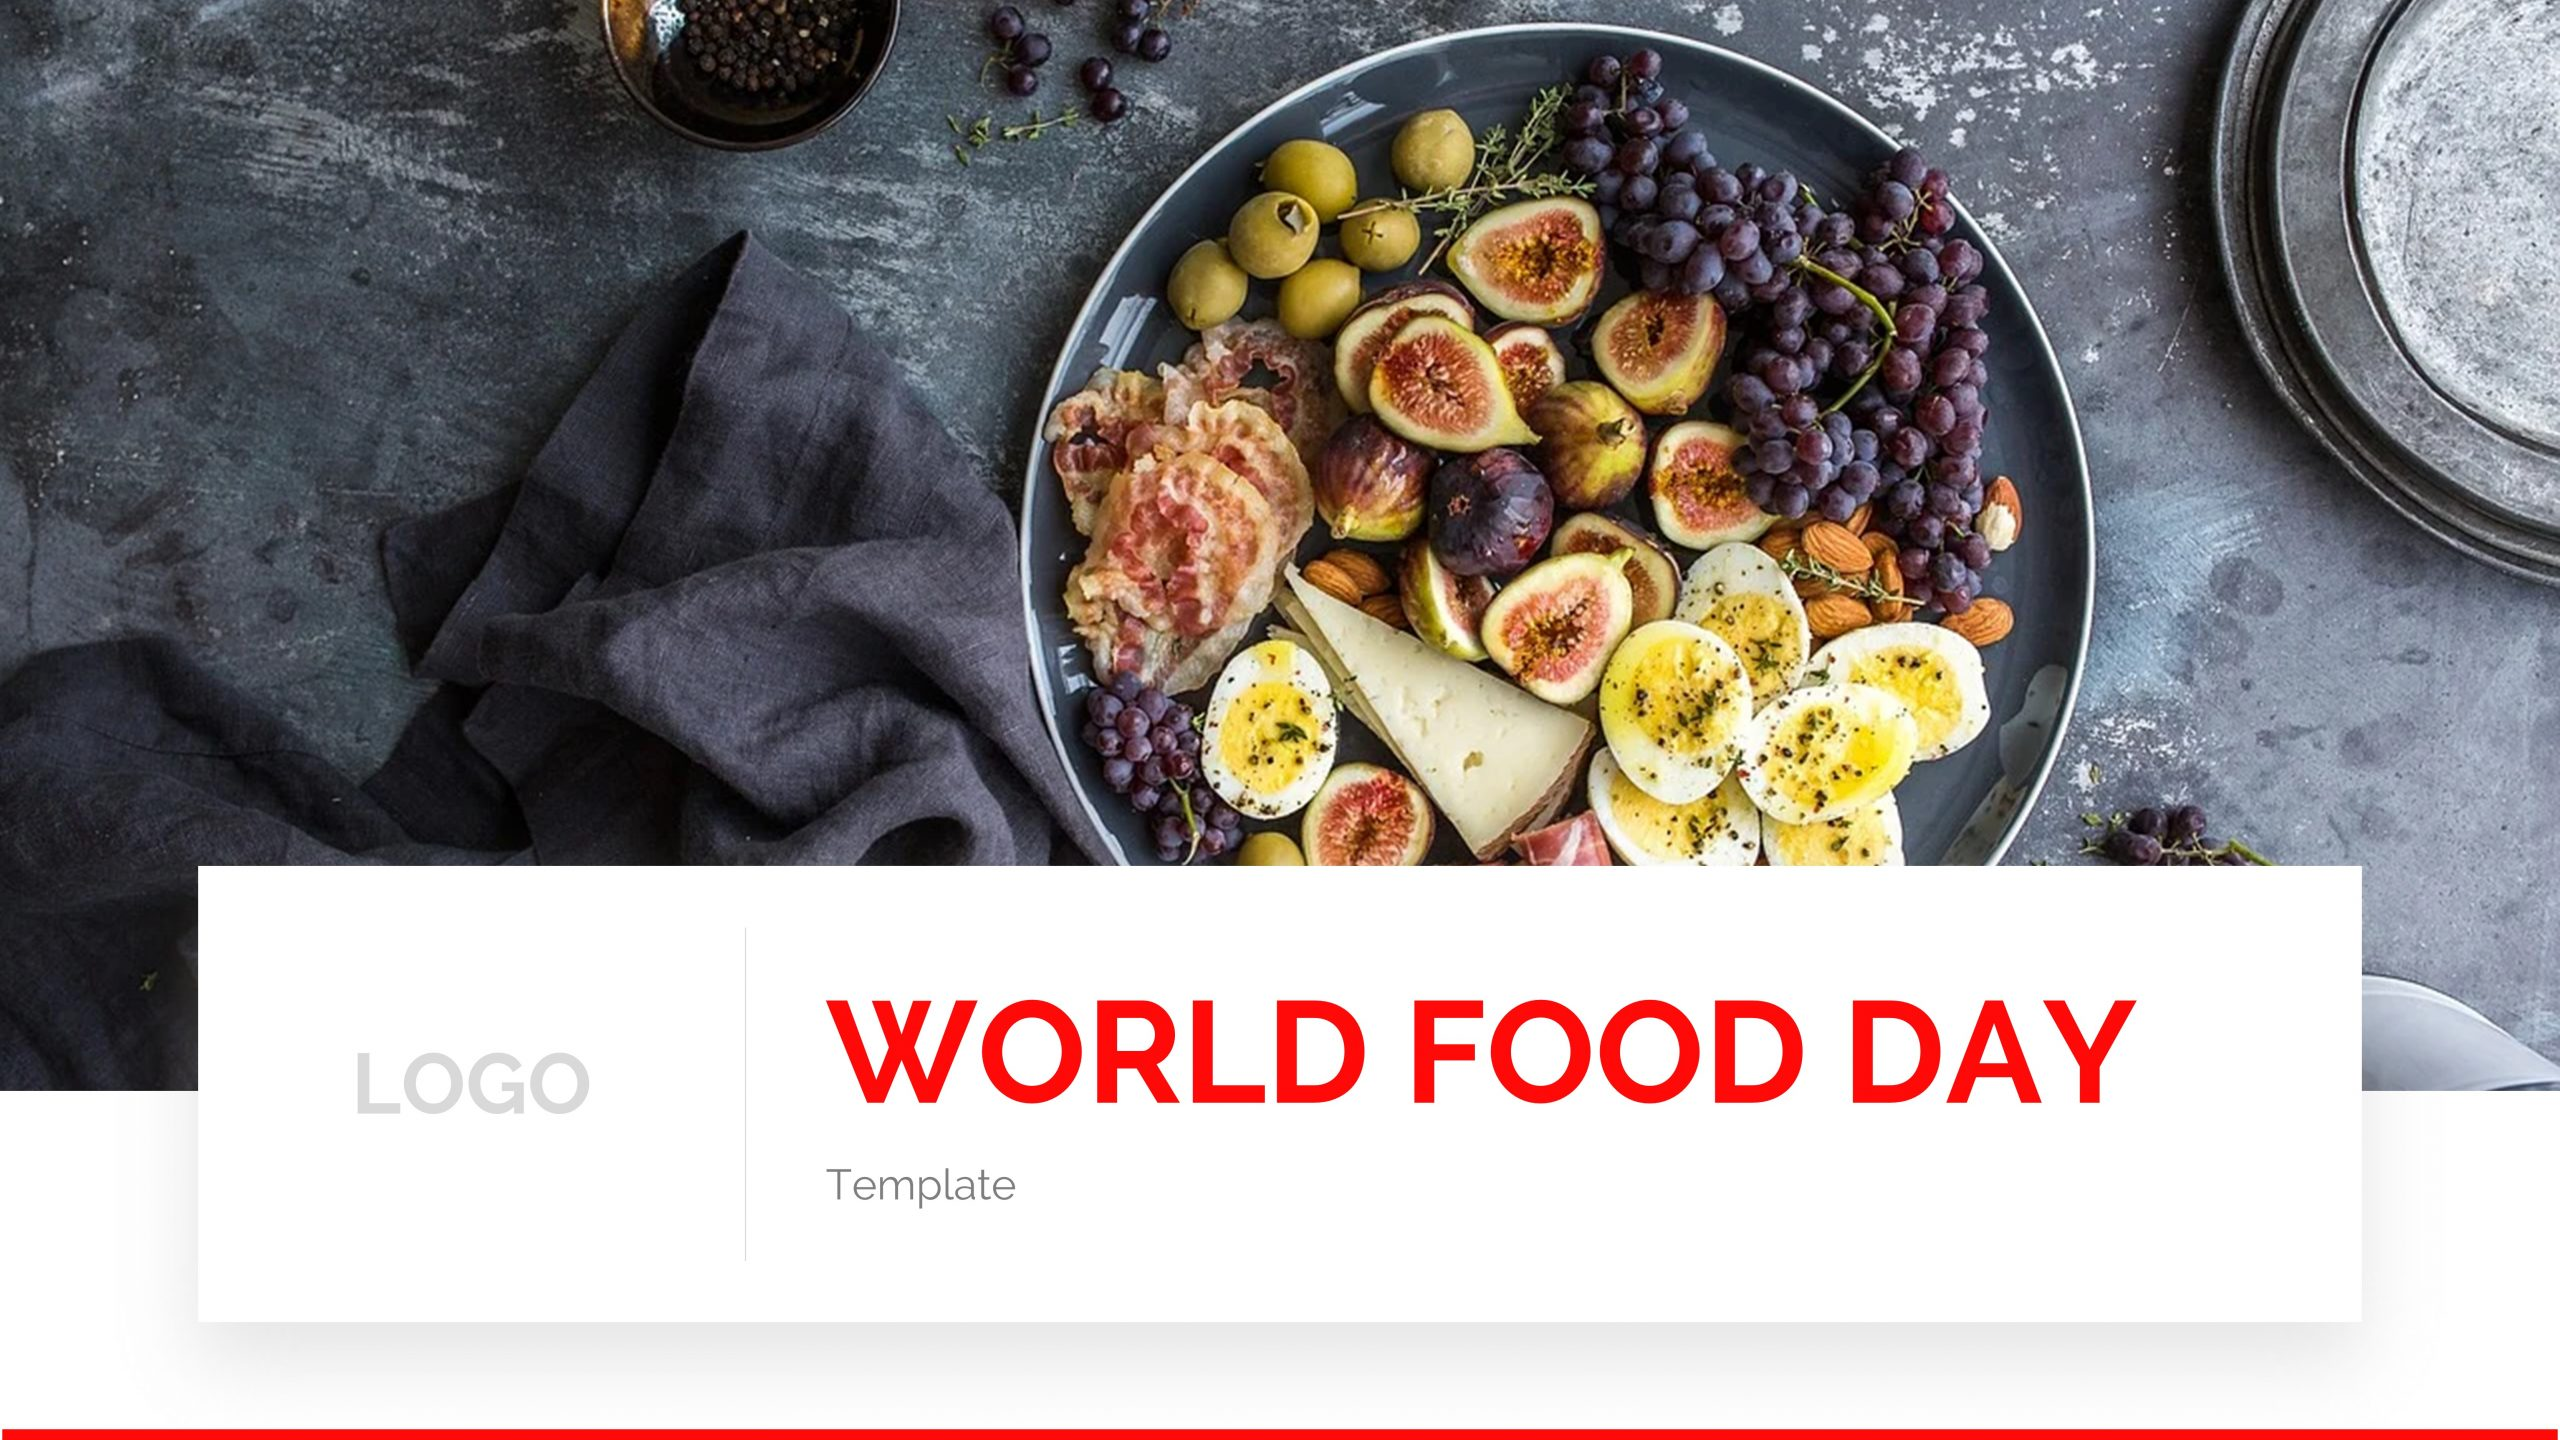 presentation template of World Food Day